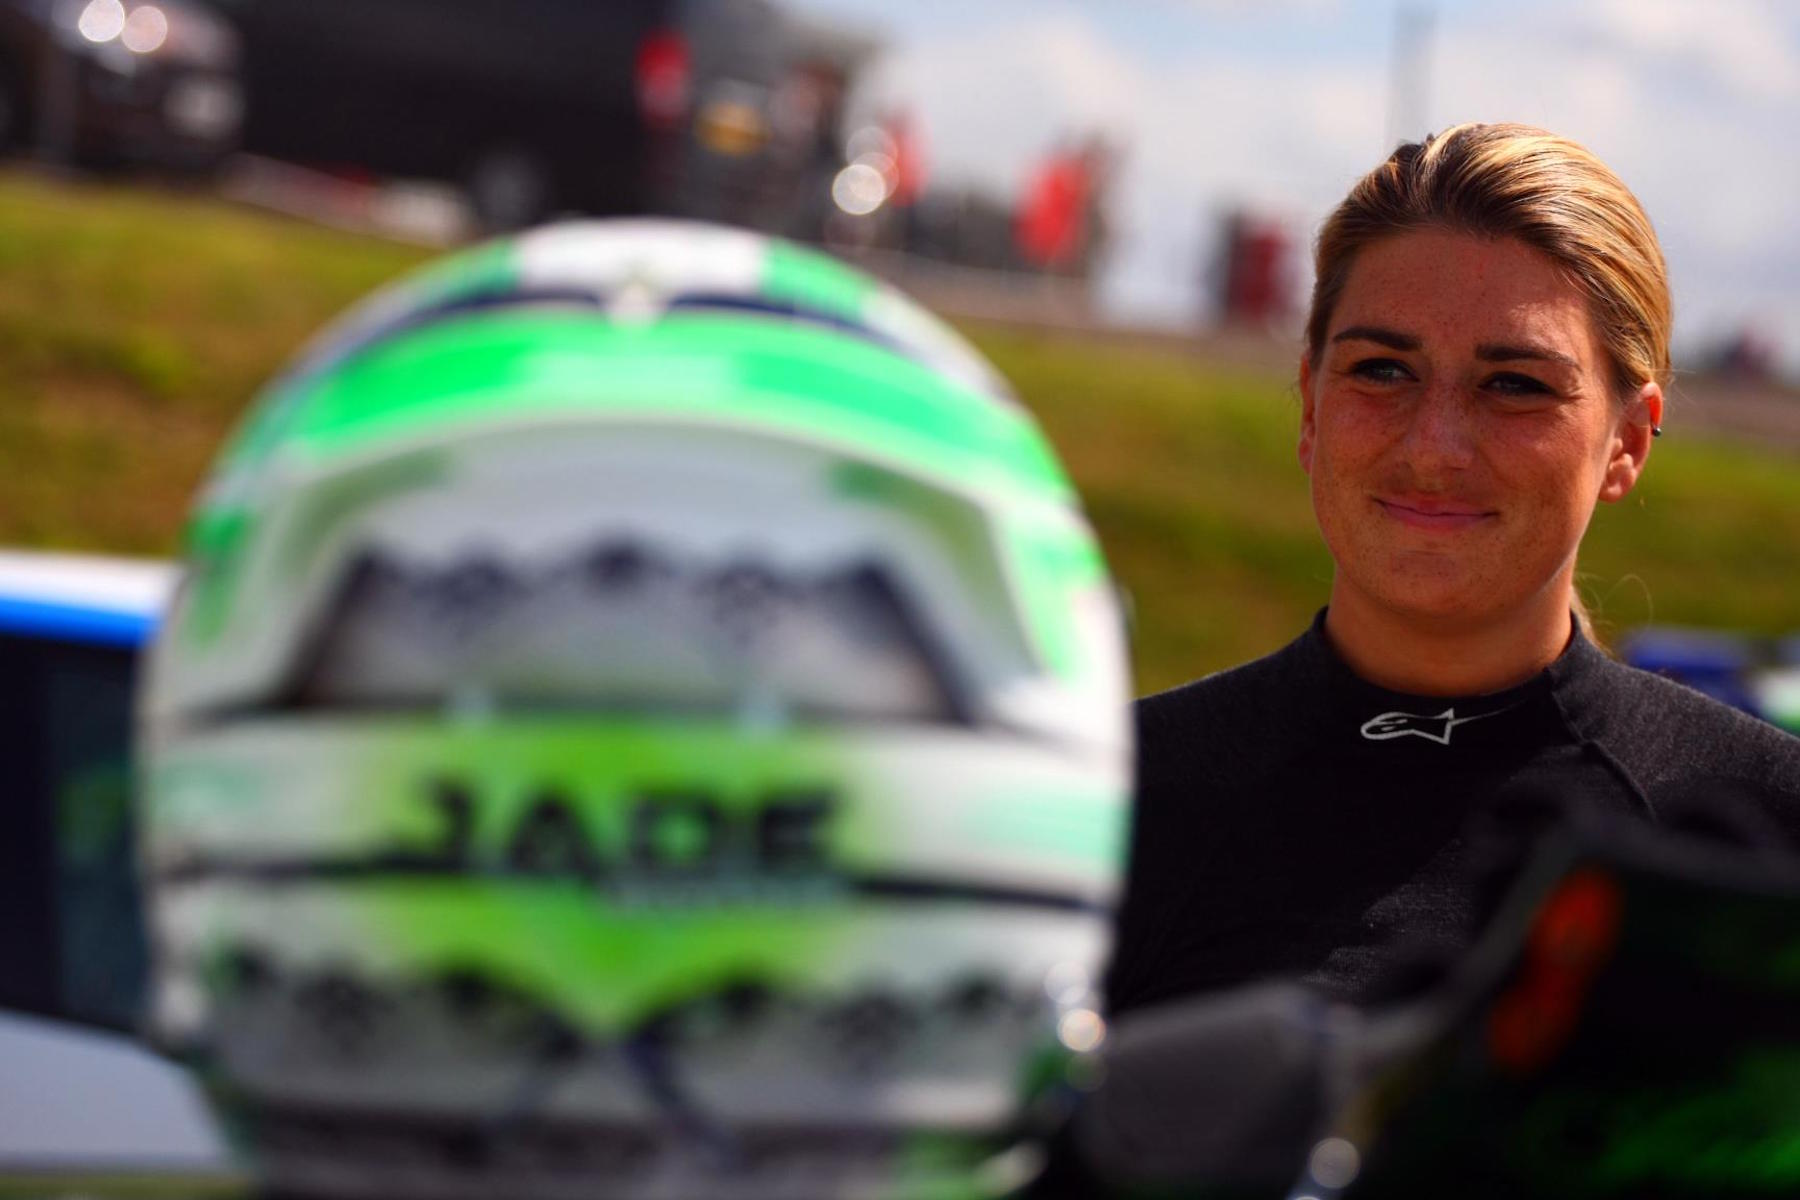 Jade Edwards secures sponsorship after scam